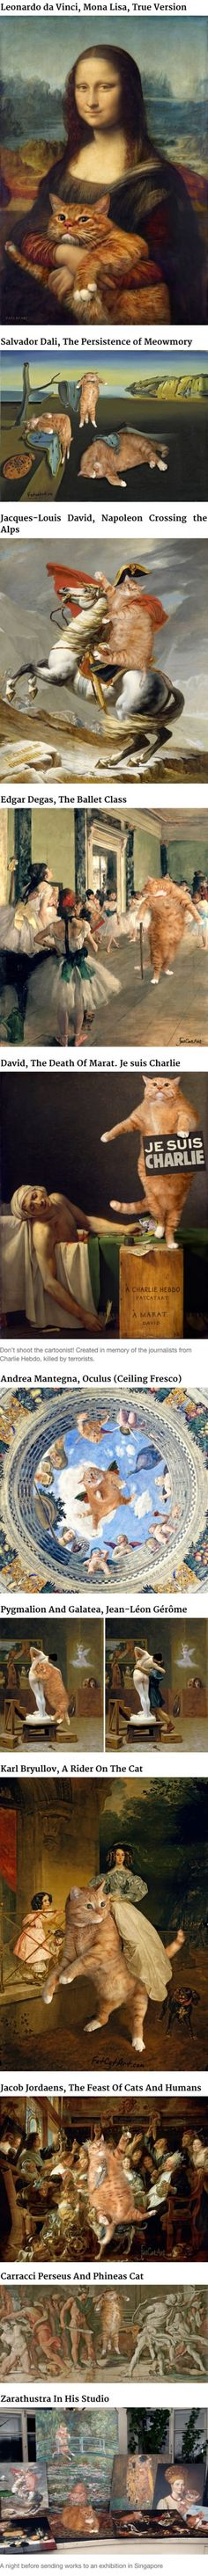 Artist Inserts Her Ginger Cat Into Famous Paintings (By Svetlana Petrova)